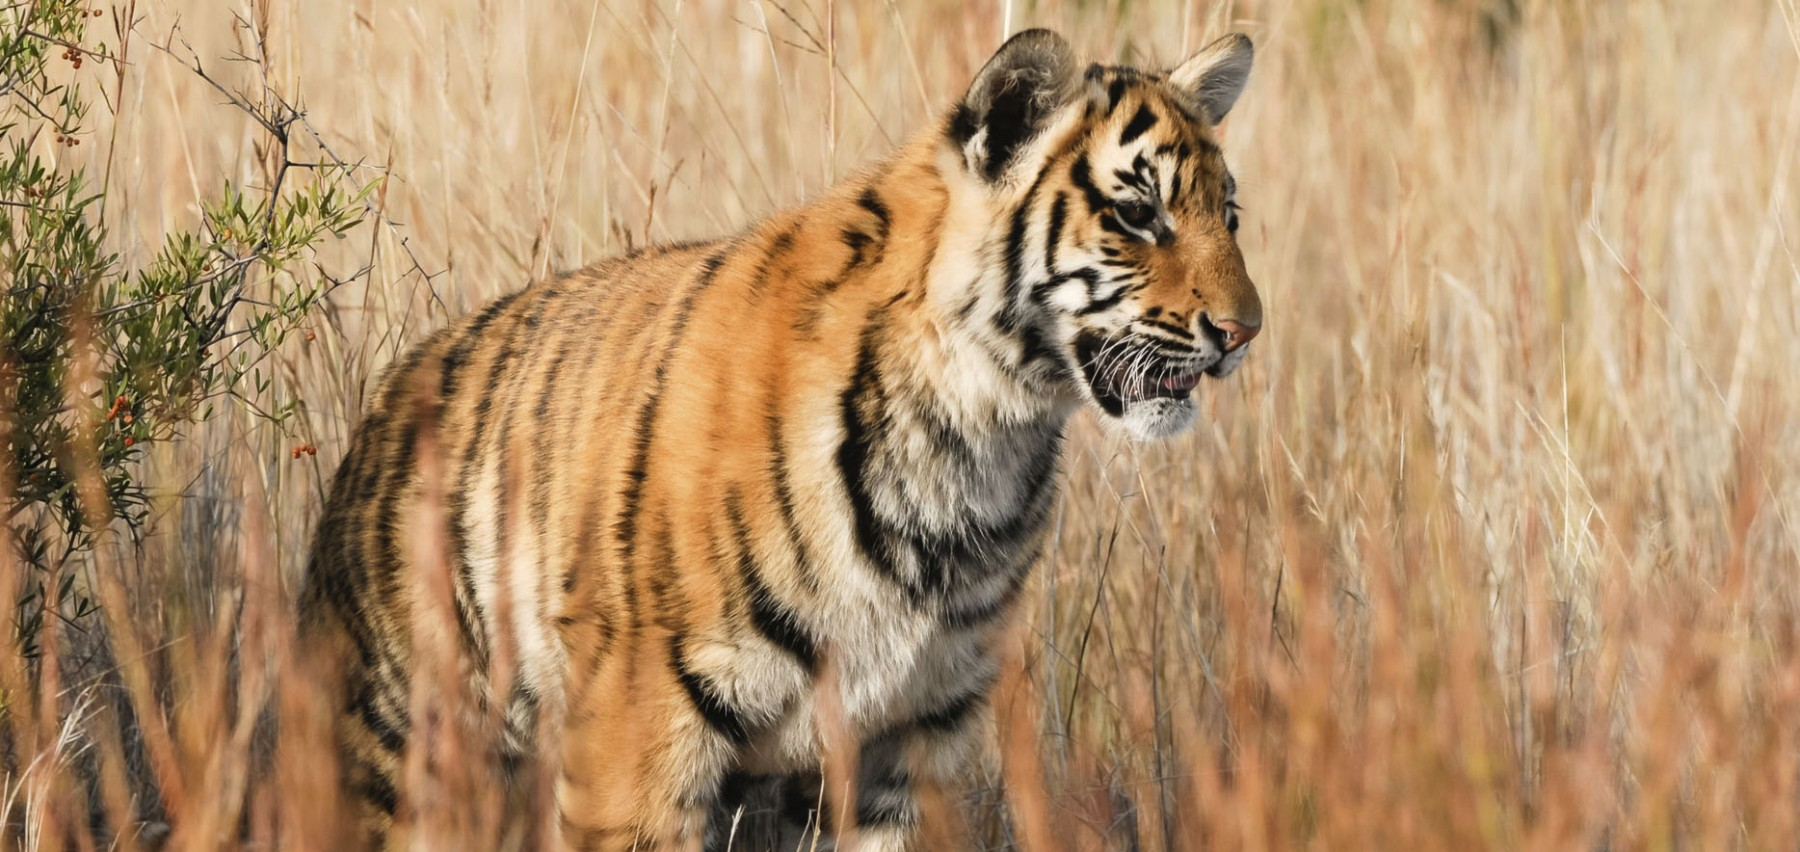 Wild tiger in long grass in unknown location